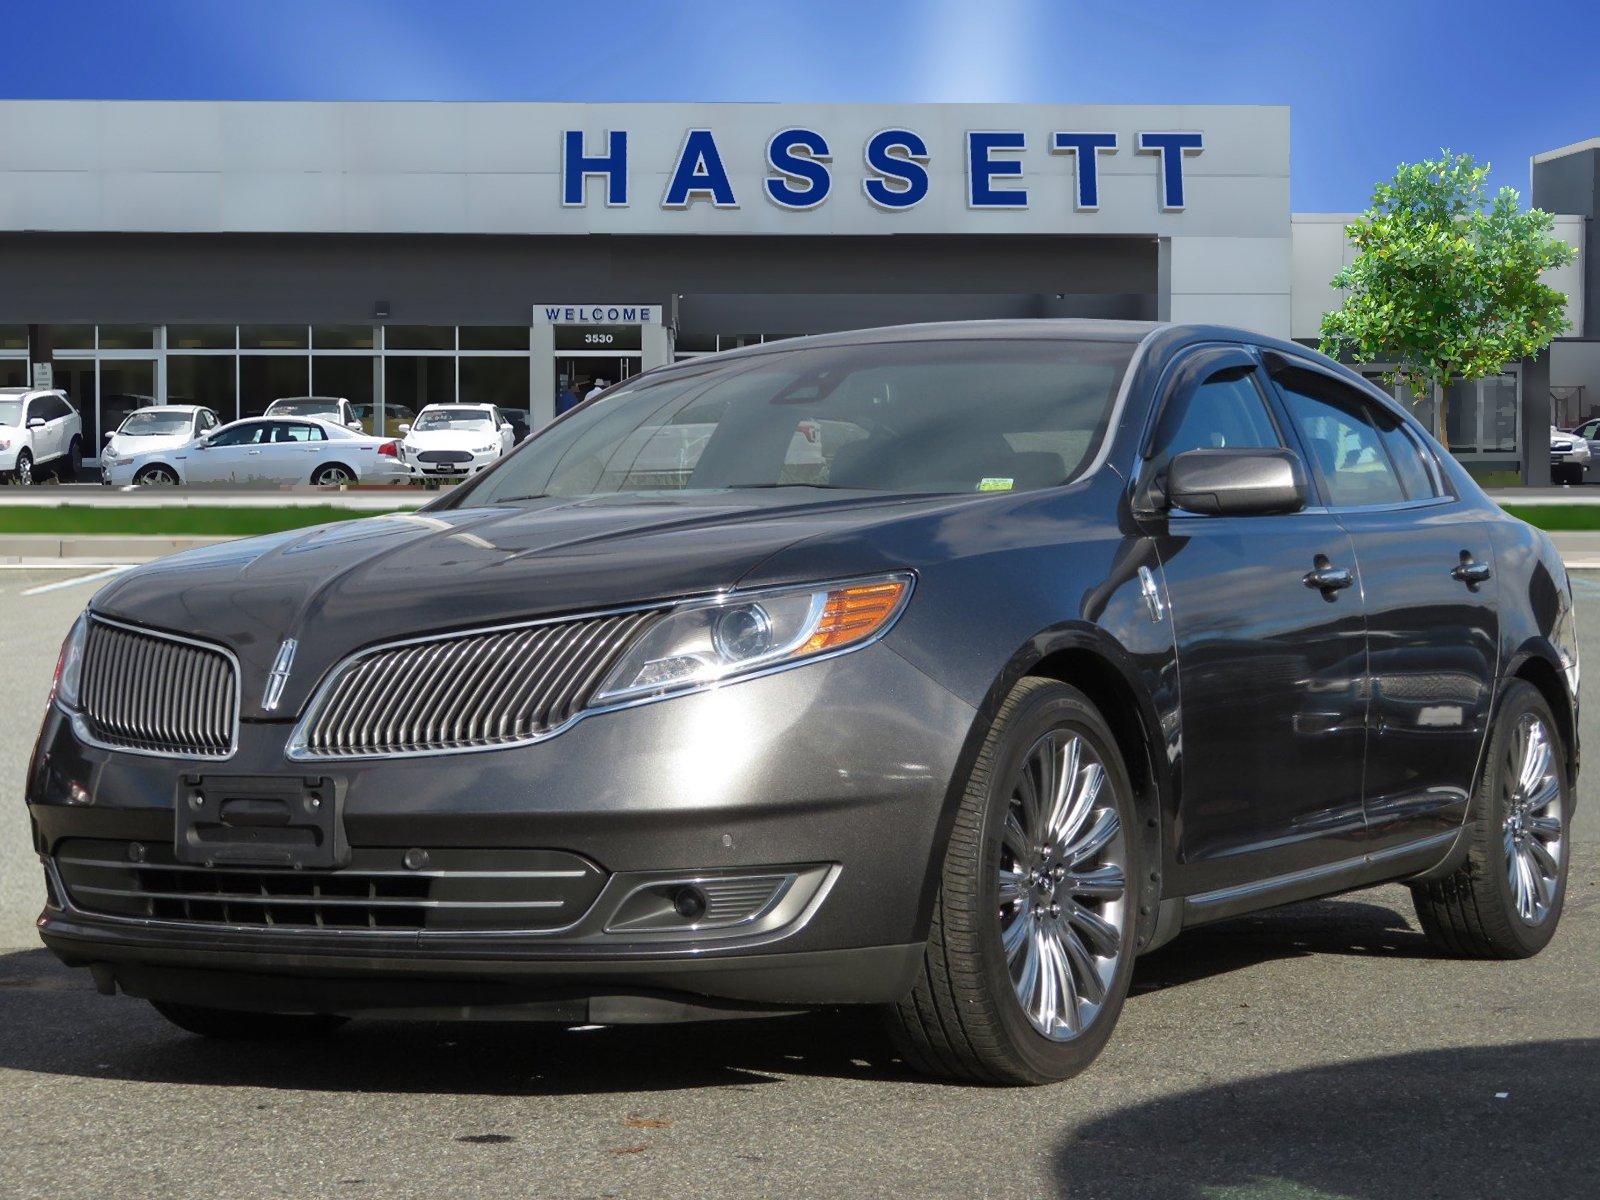 2015 Lincoln MKS 4DR SDN 3.7L AWD Sedan